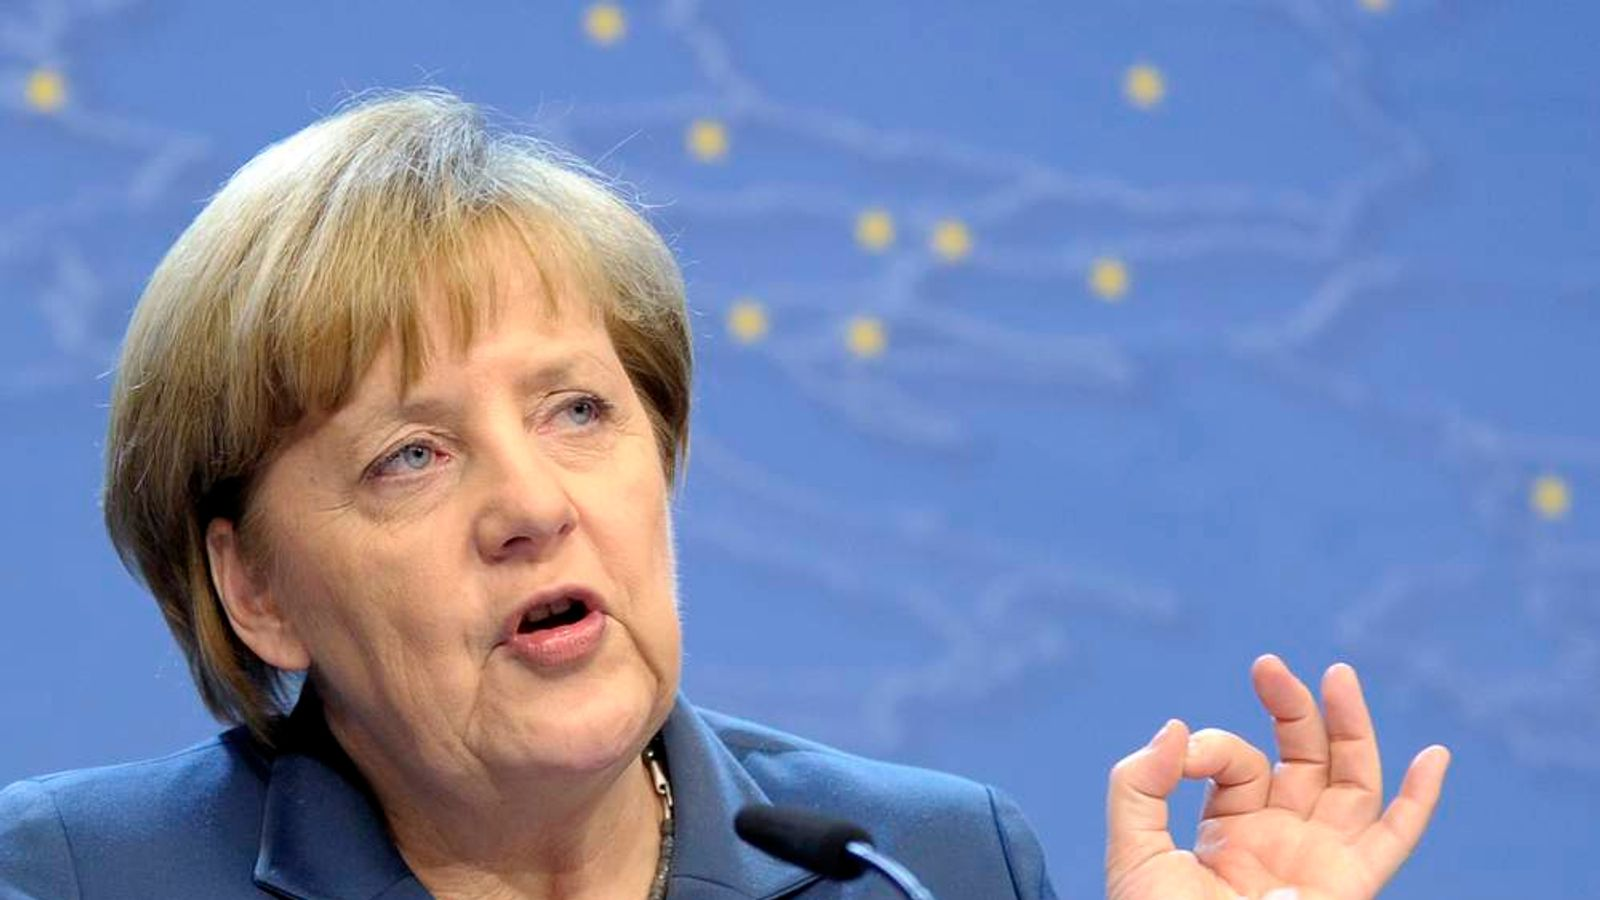 Germany's Chancellor Merkel addresses a news conference during a European Union leaders summit in Brussels